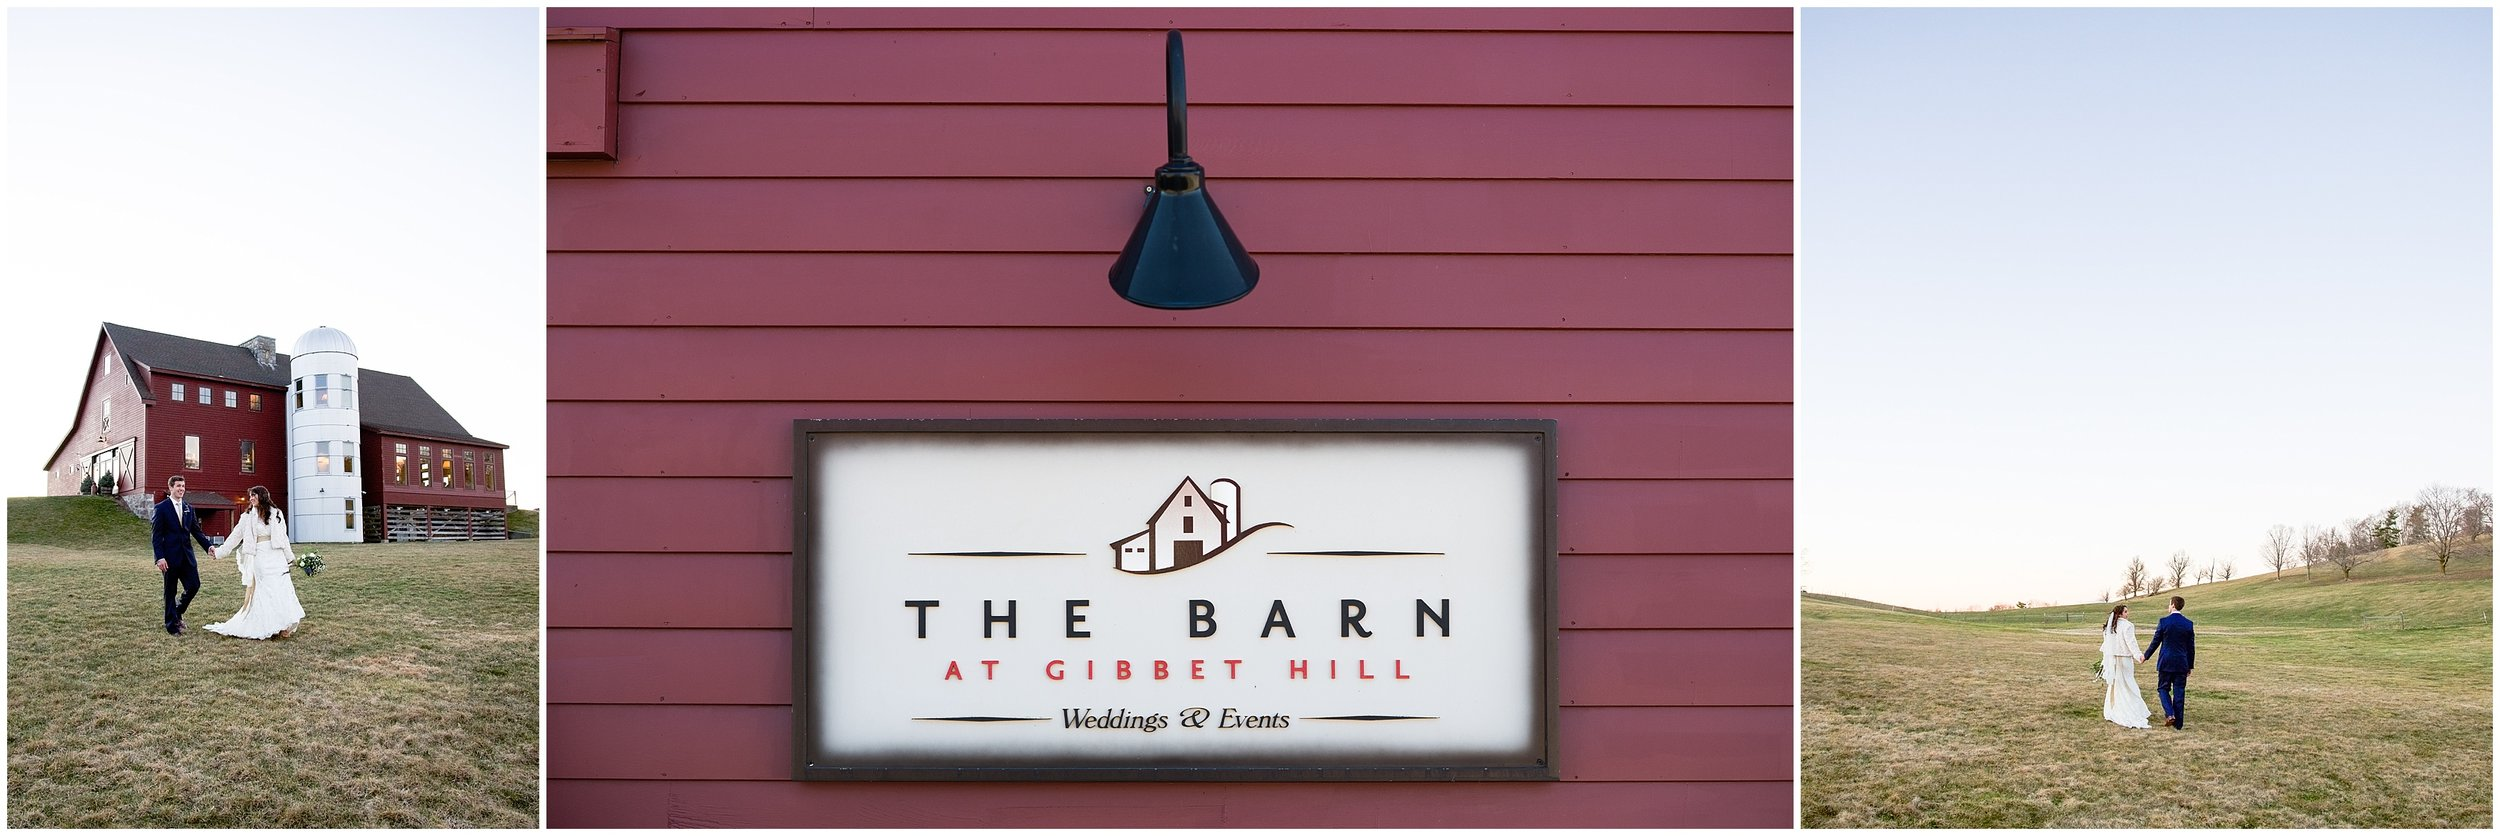 Boston Wedding Photographer | Barn at Gibbet Hill Wedding | Boston wedding venues